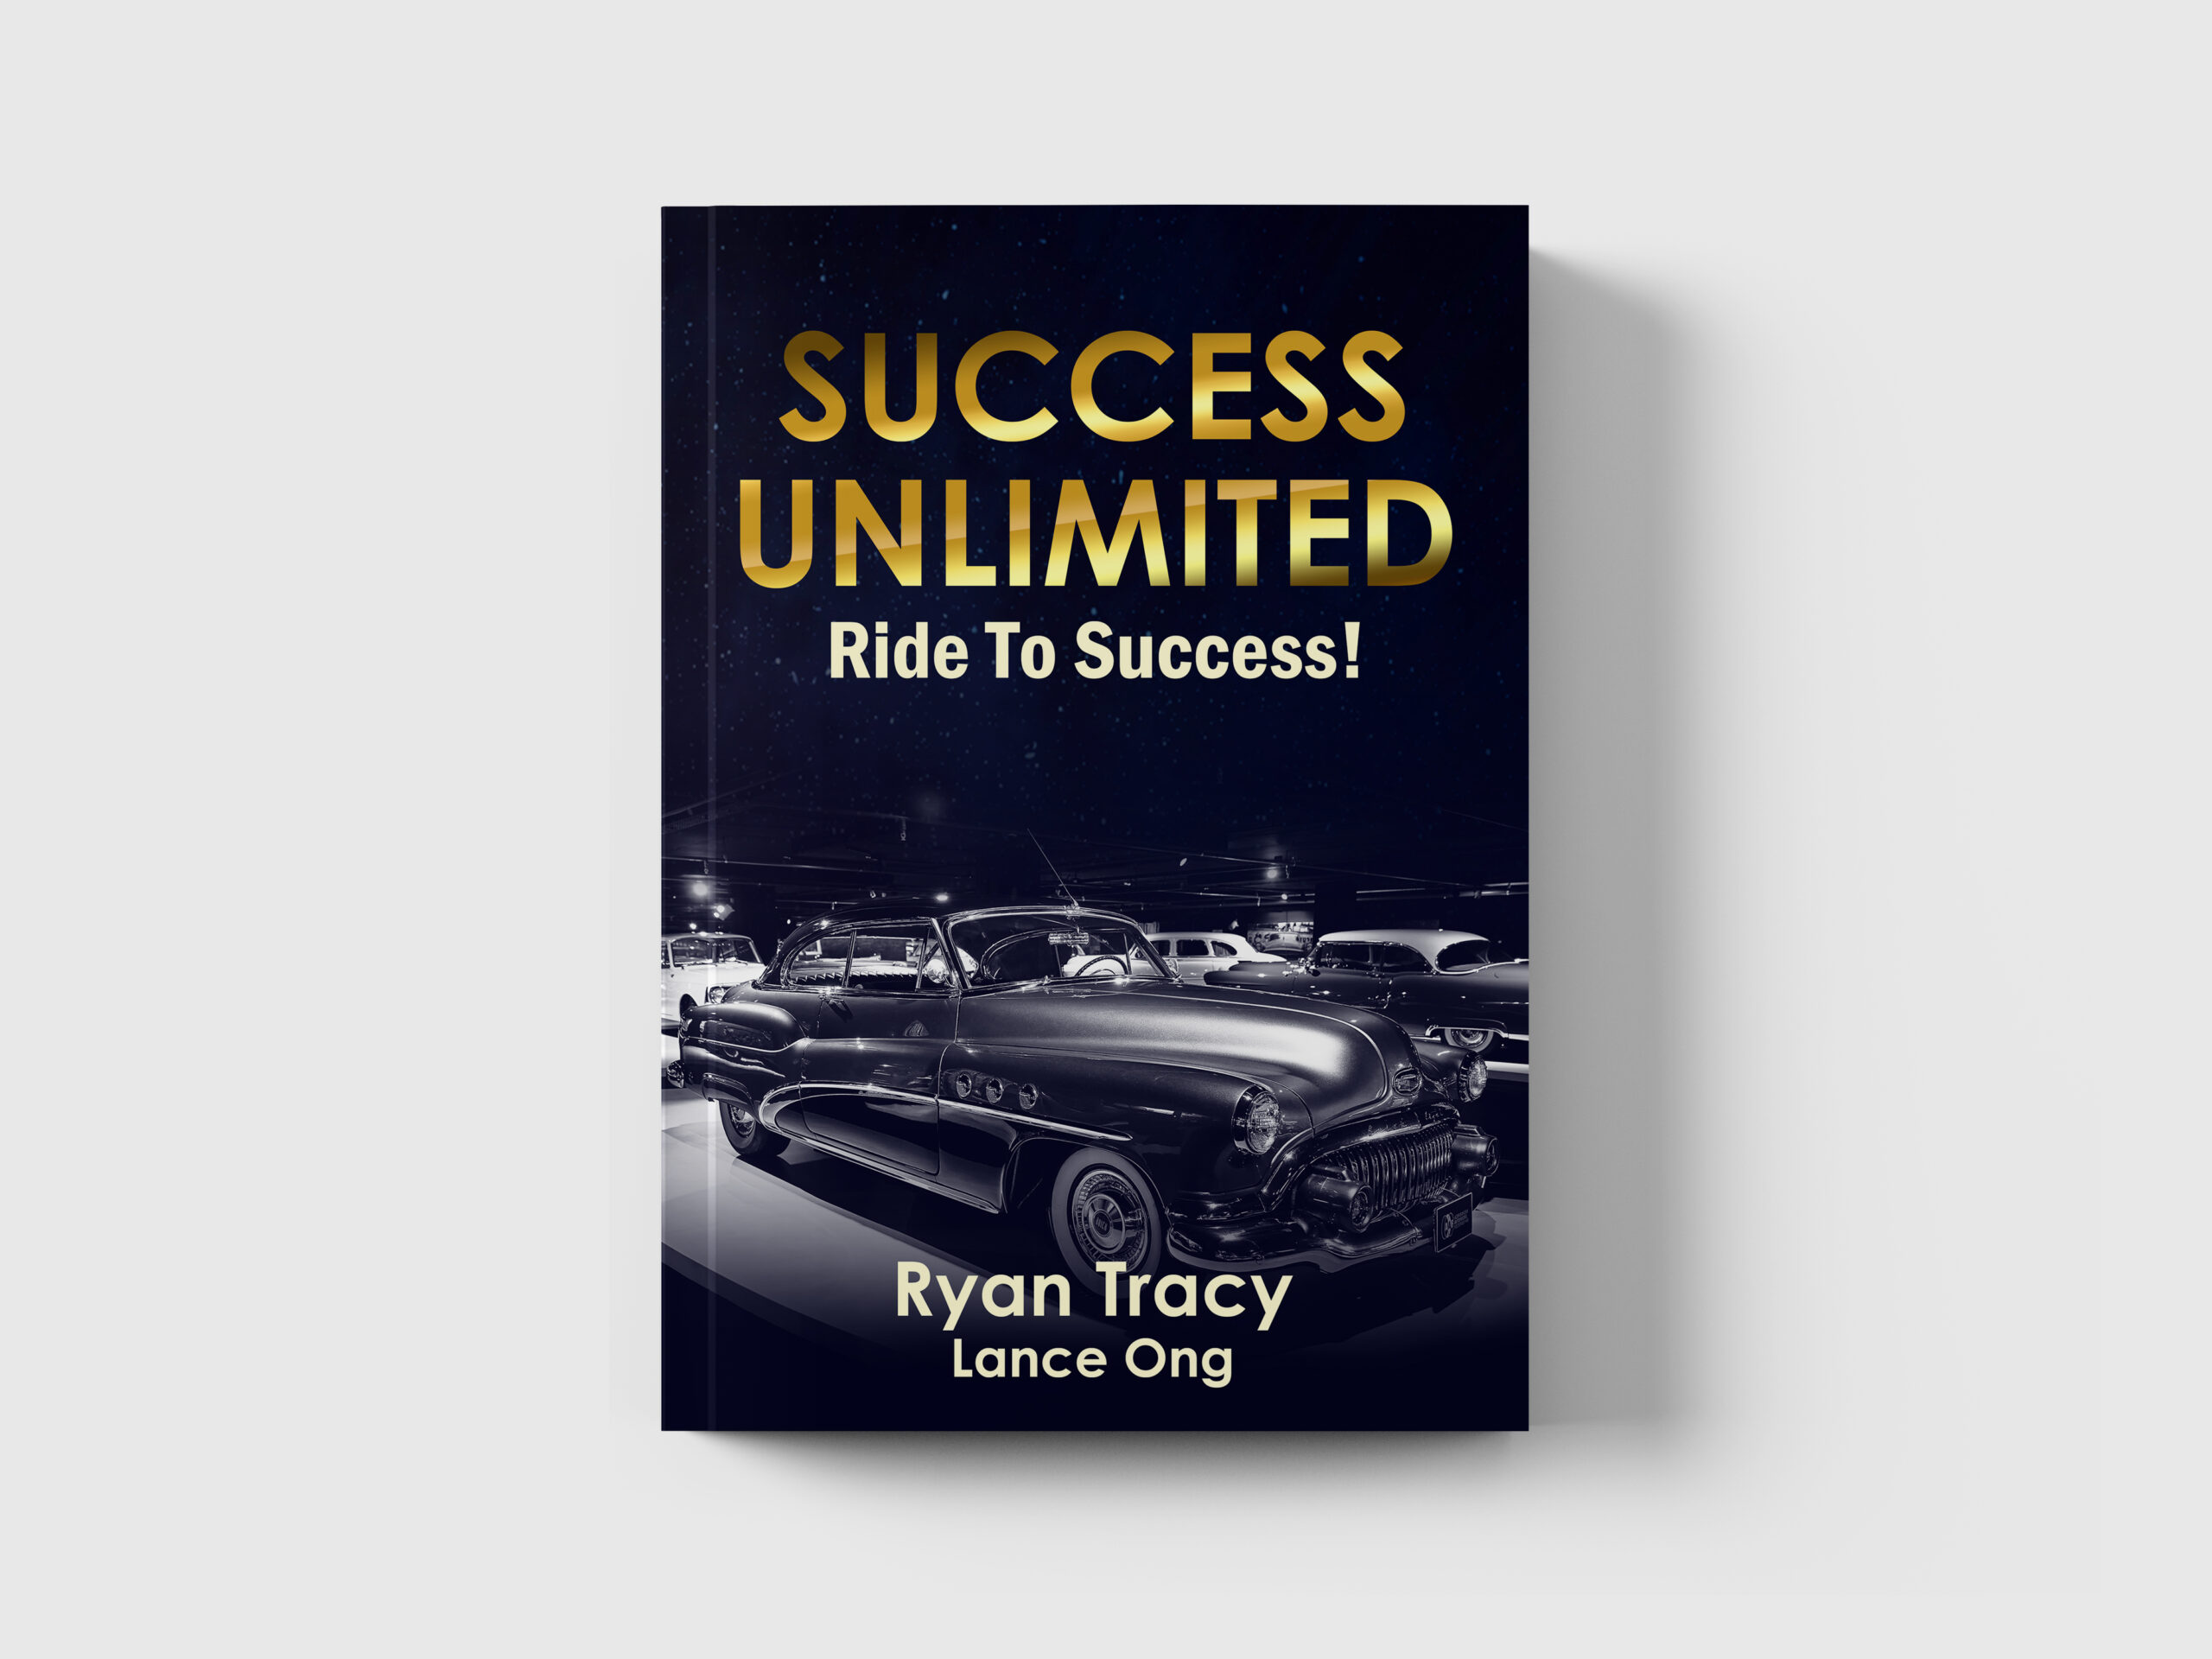 Book Cover of Success Unlimited by Ryan Tracy & Lance Ong